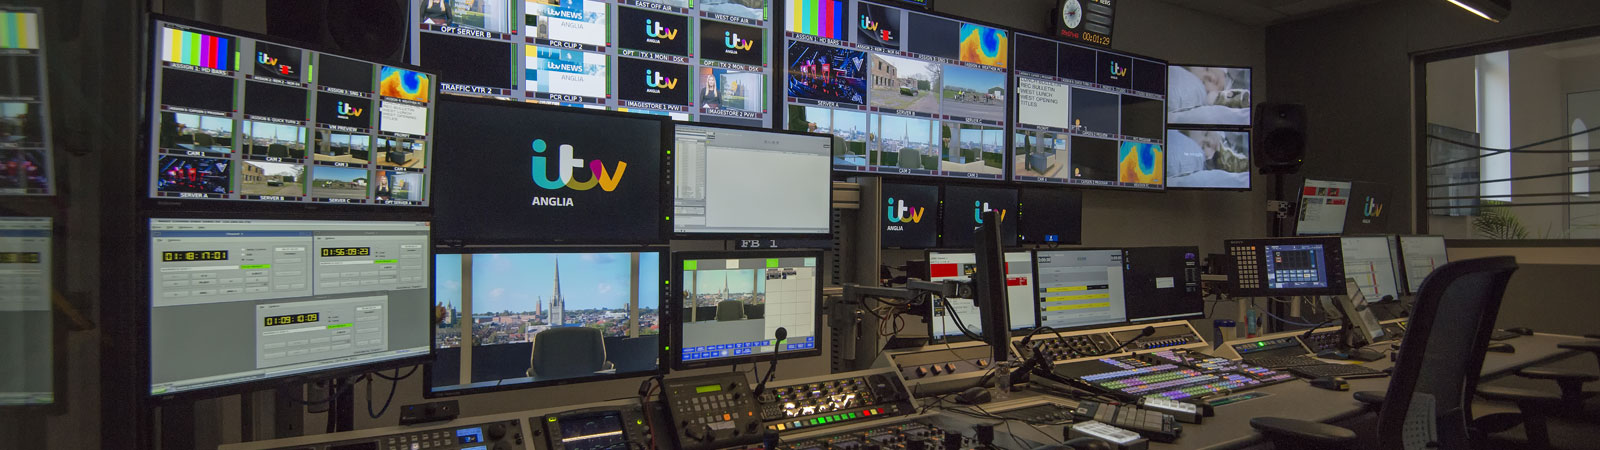 Monitors and switchers television studio at the ITV